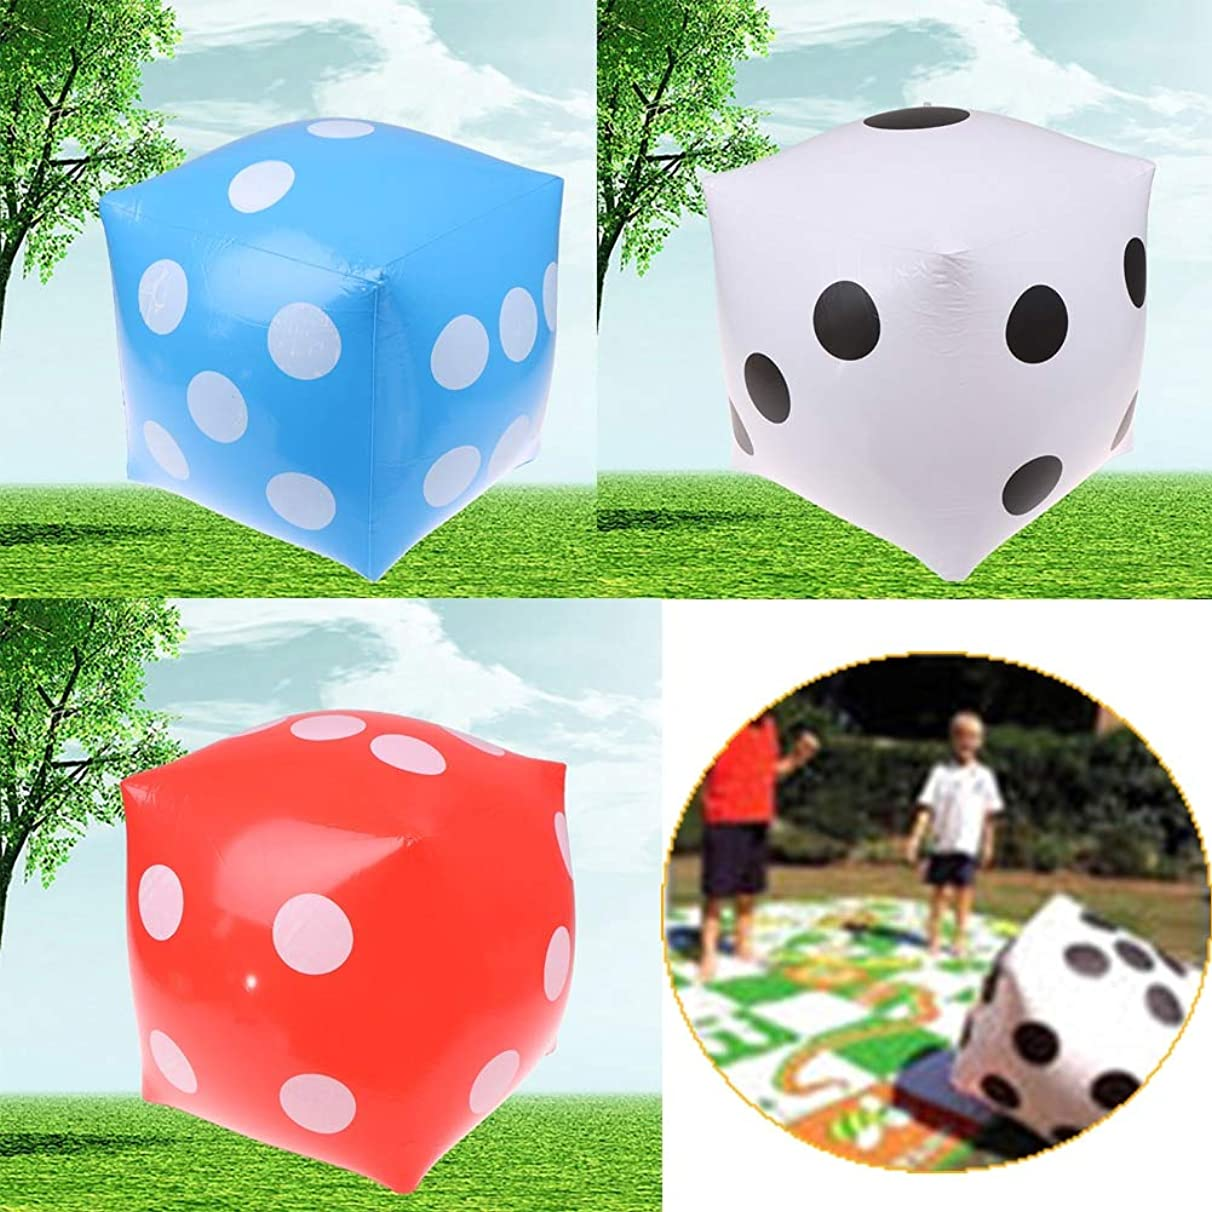 Fishing-Accessories - 35cm Inflatable Multi Color Blow-Up Cube Dice Toy Stage Prop Group Game Tool Casino Poker Party Decorations Pool Beach Toy